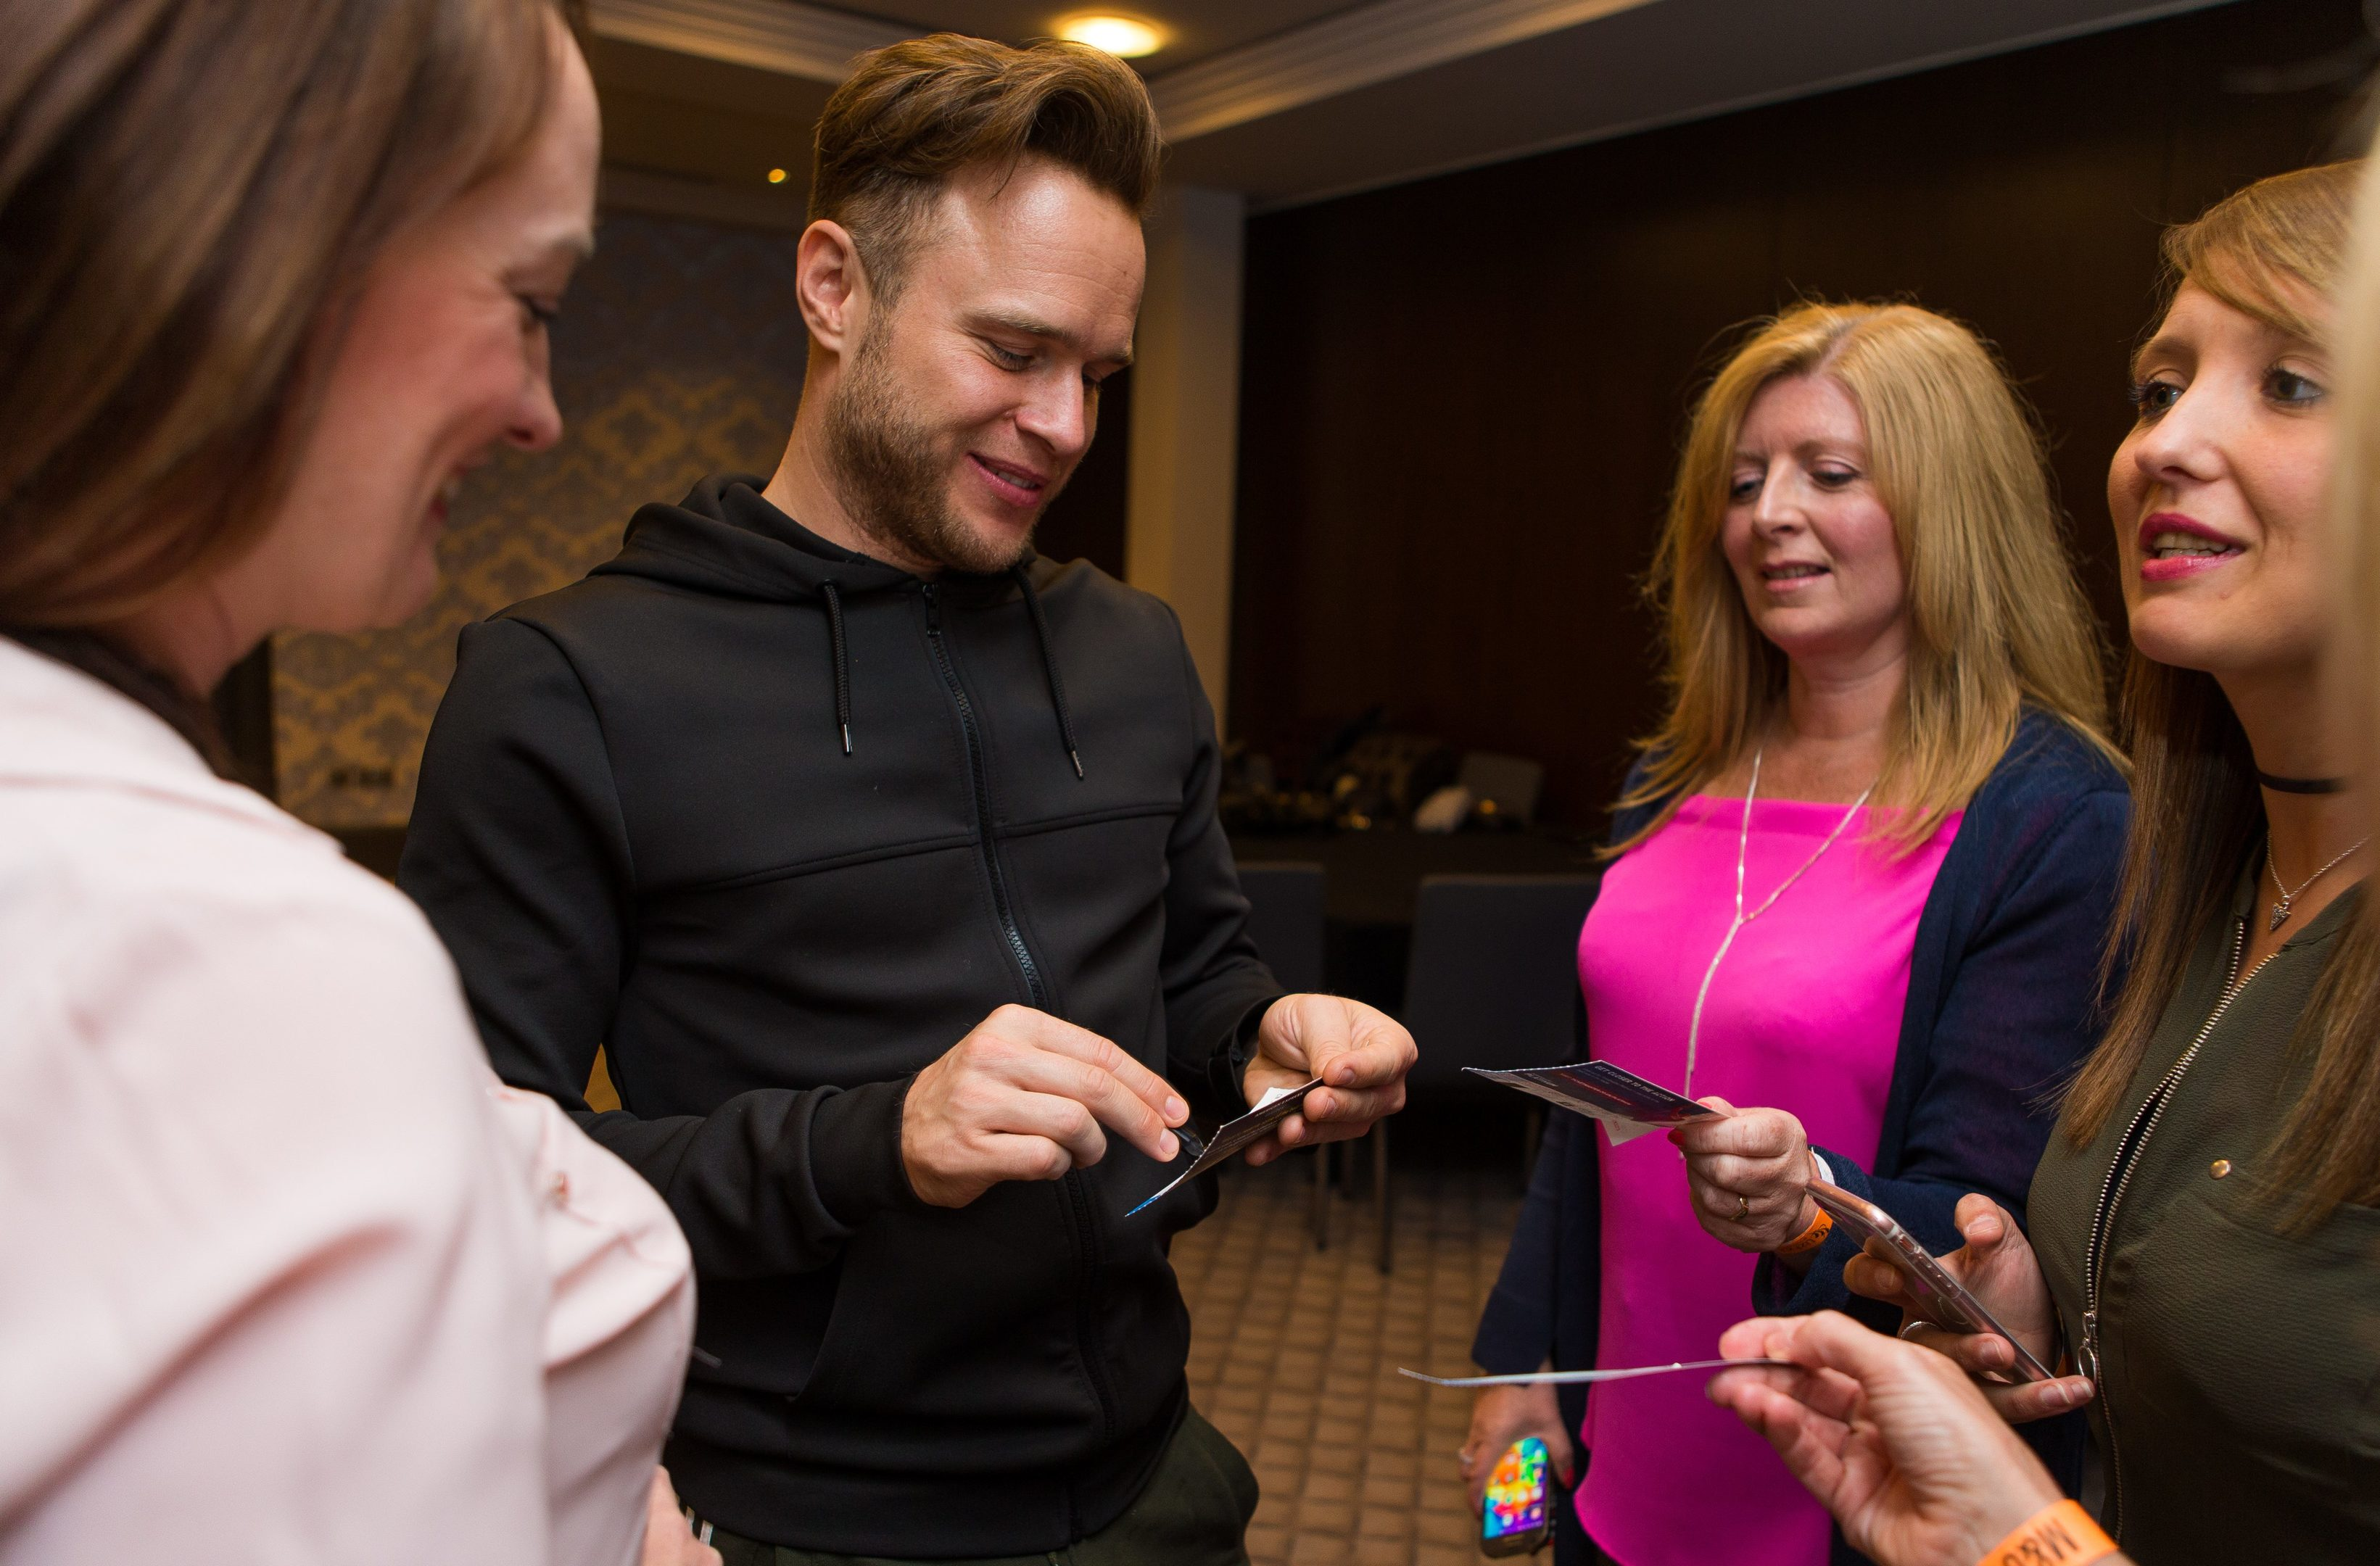 Olly meets competition winners at the Malmaison